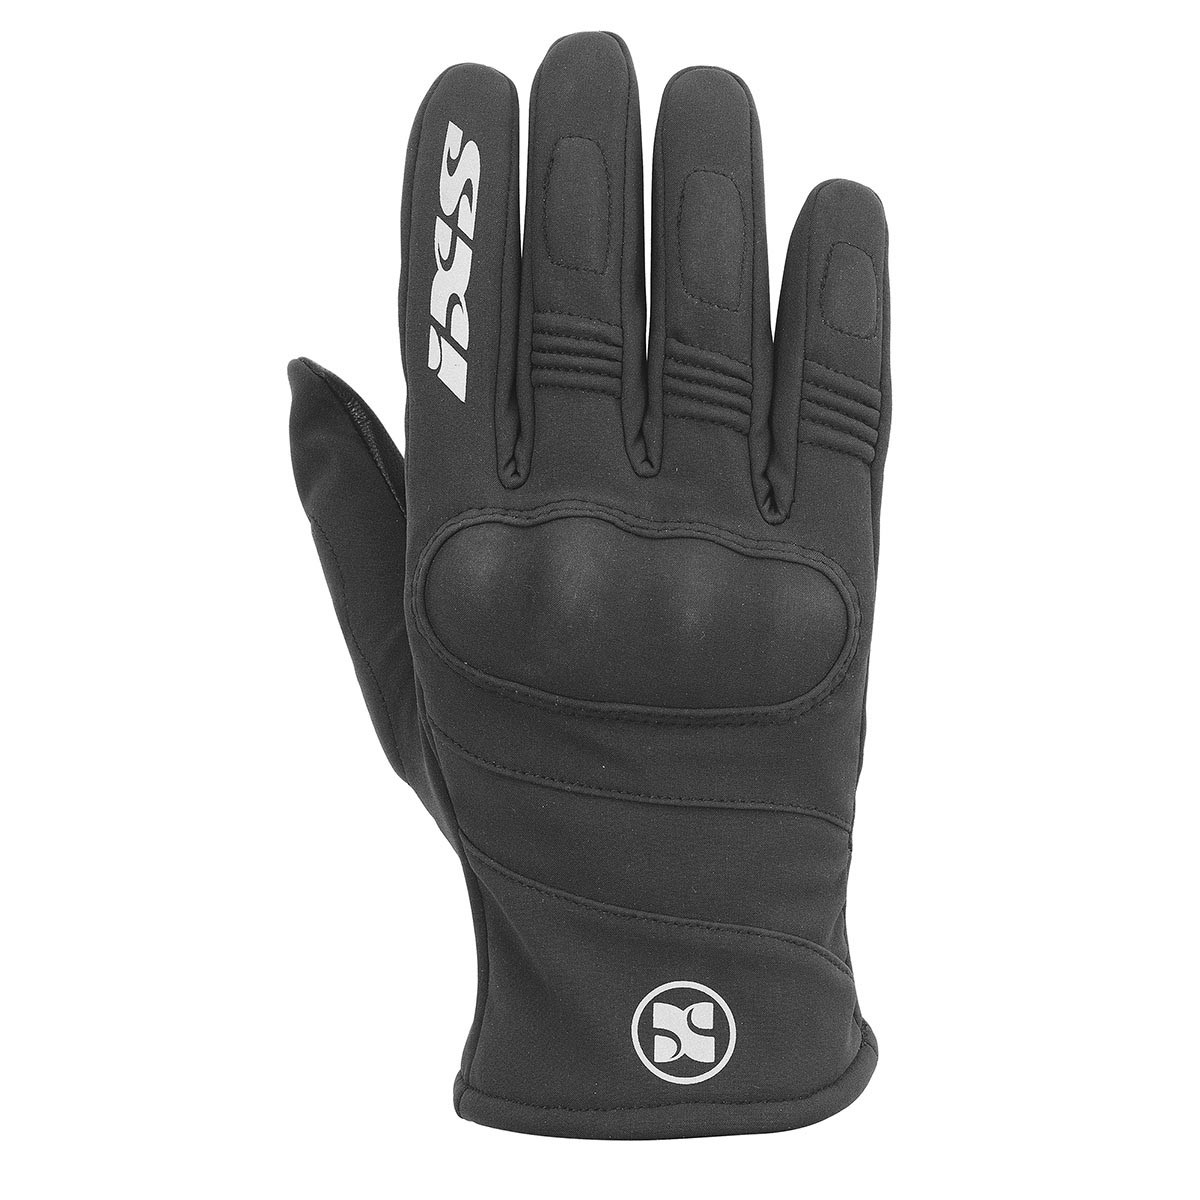 GARA SOFTSHELL GLOVE